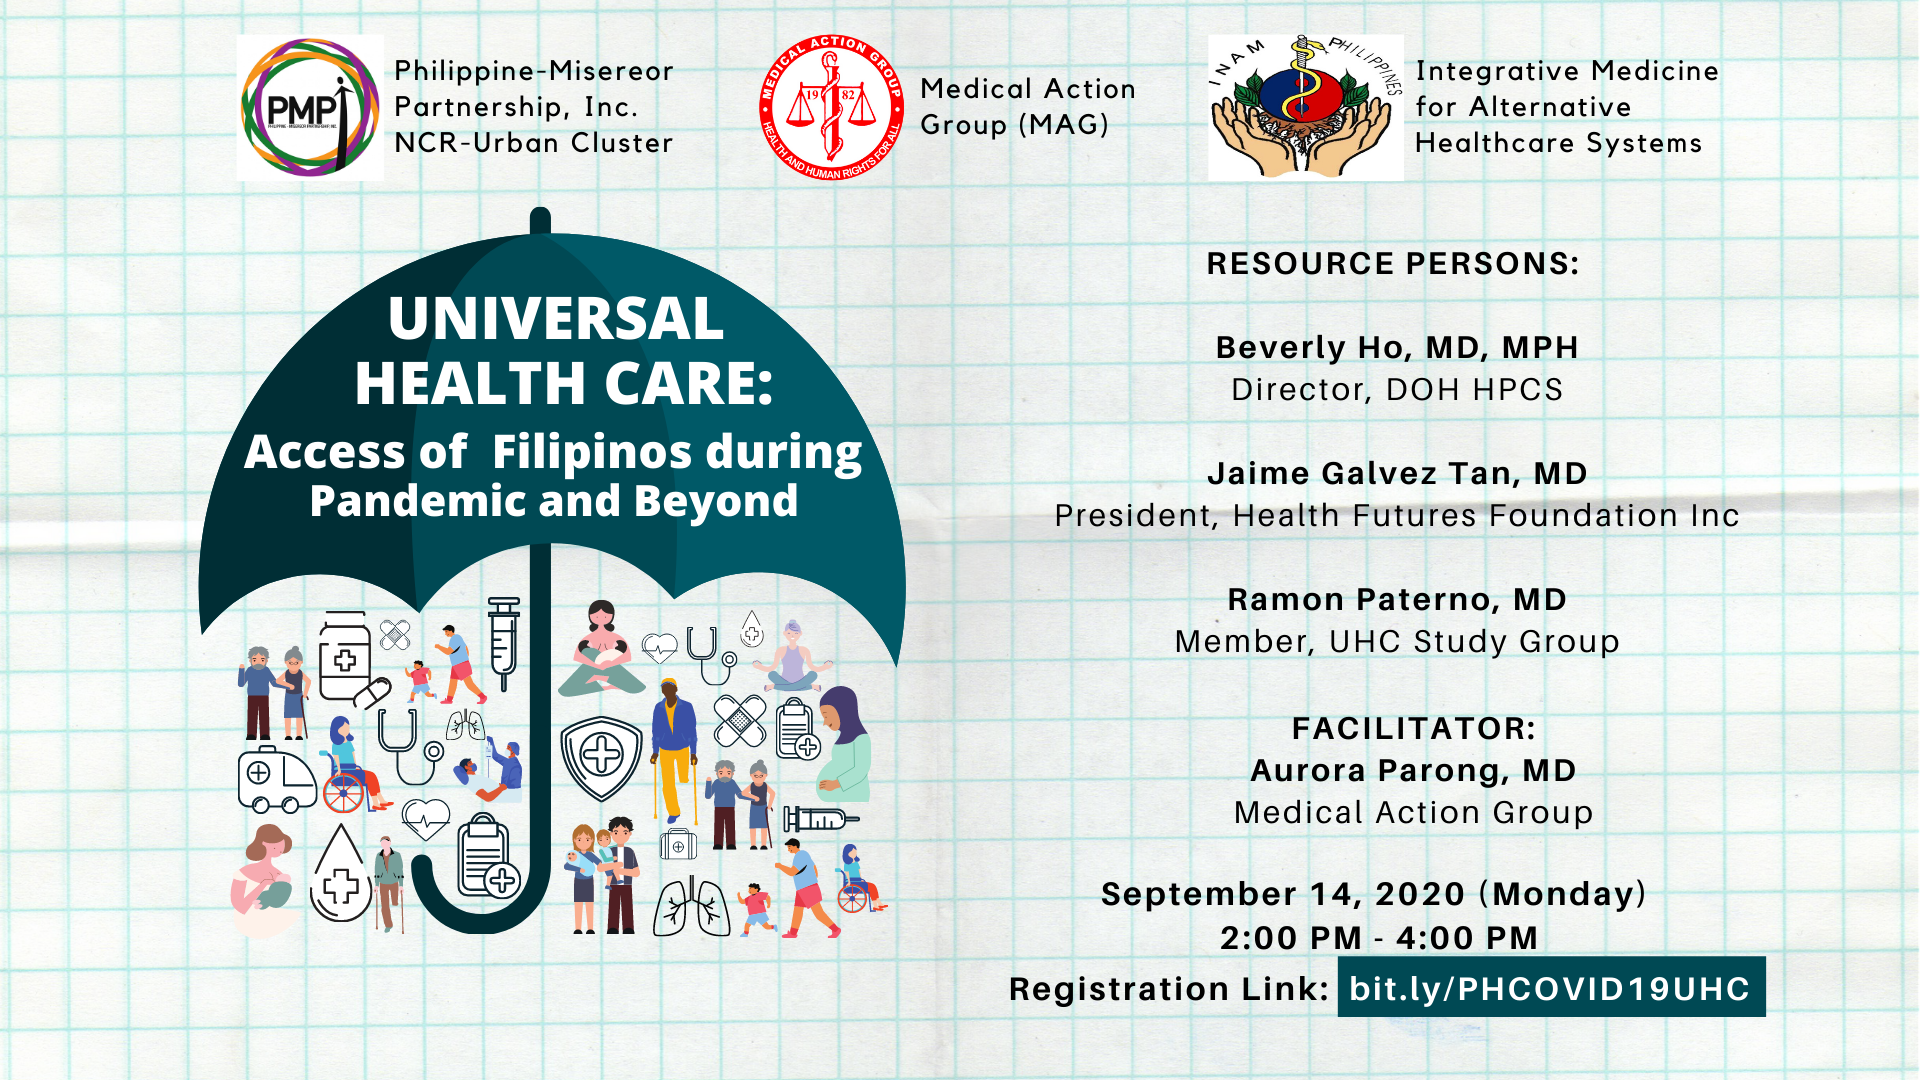 Webinar on the Universal Health Care: Access of Filipinos during the COVID-19 Pandemic